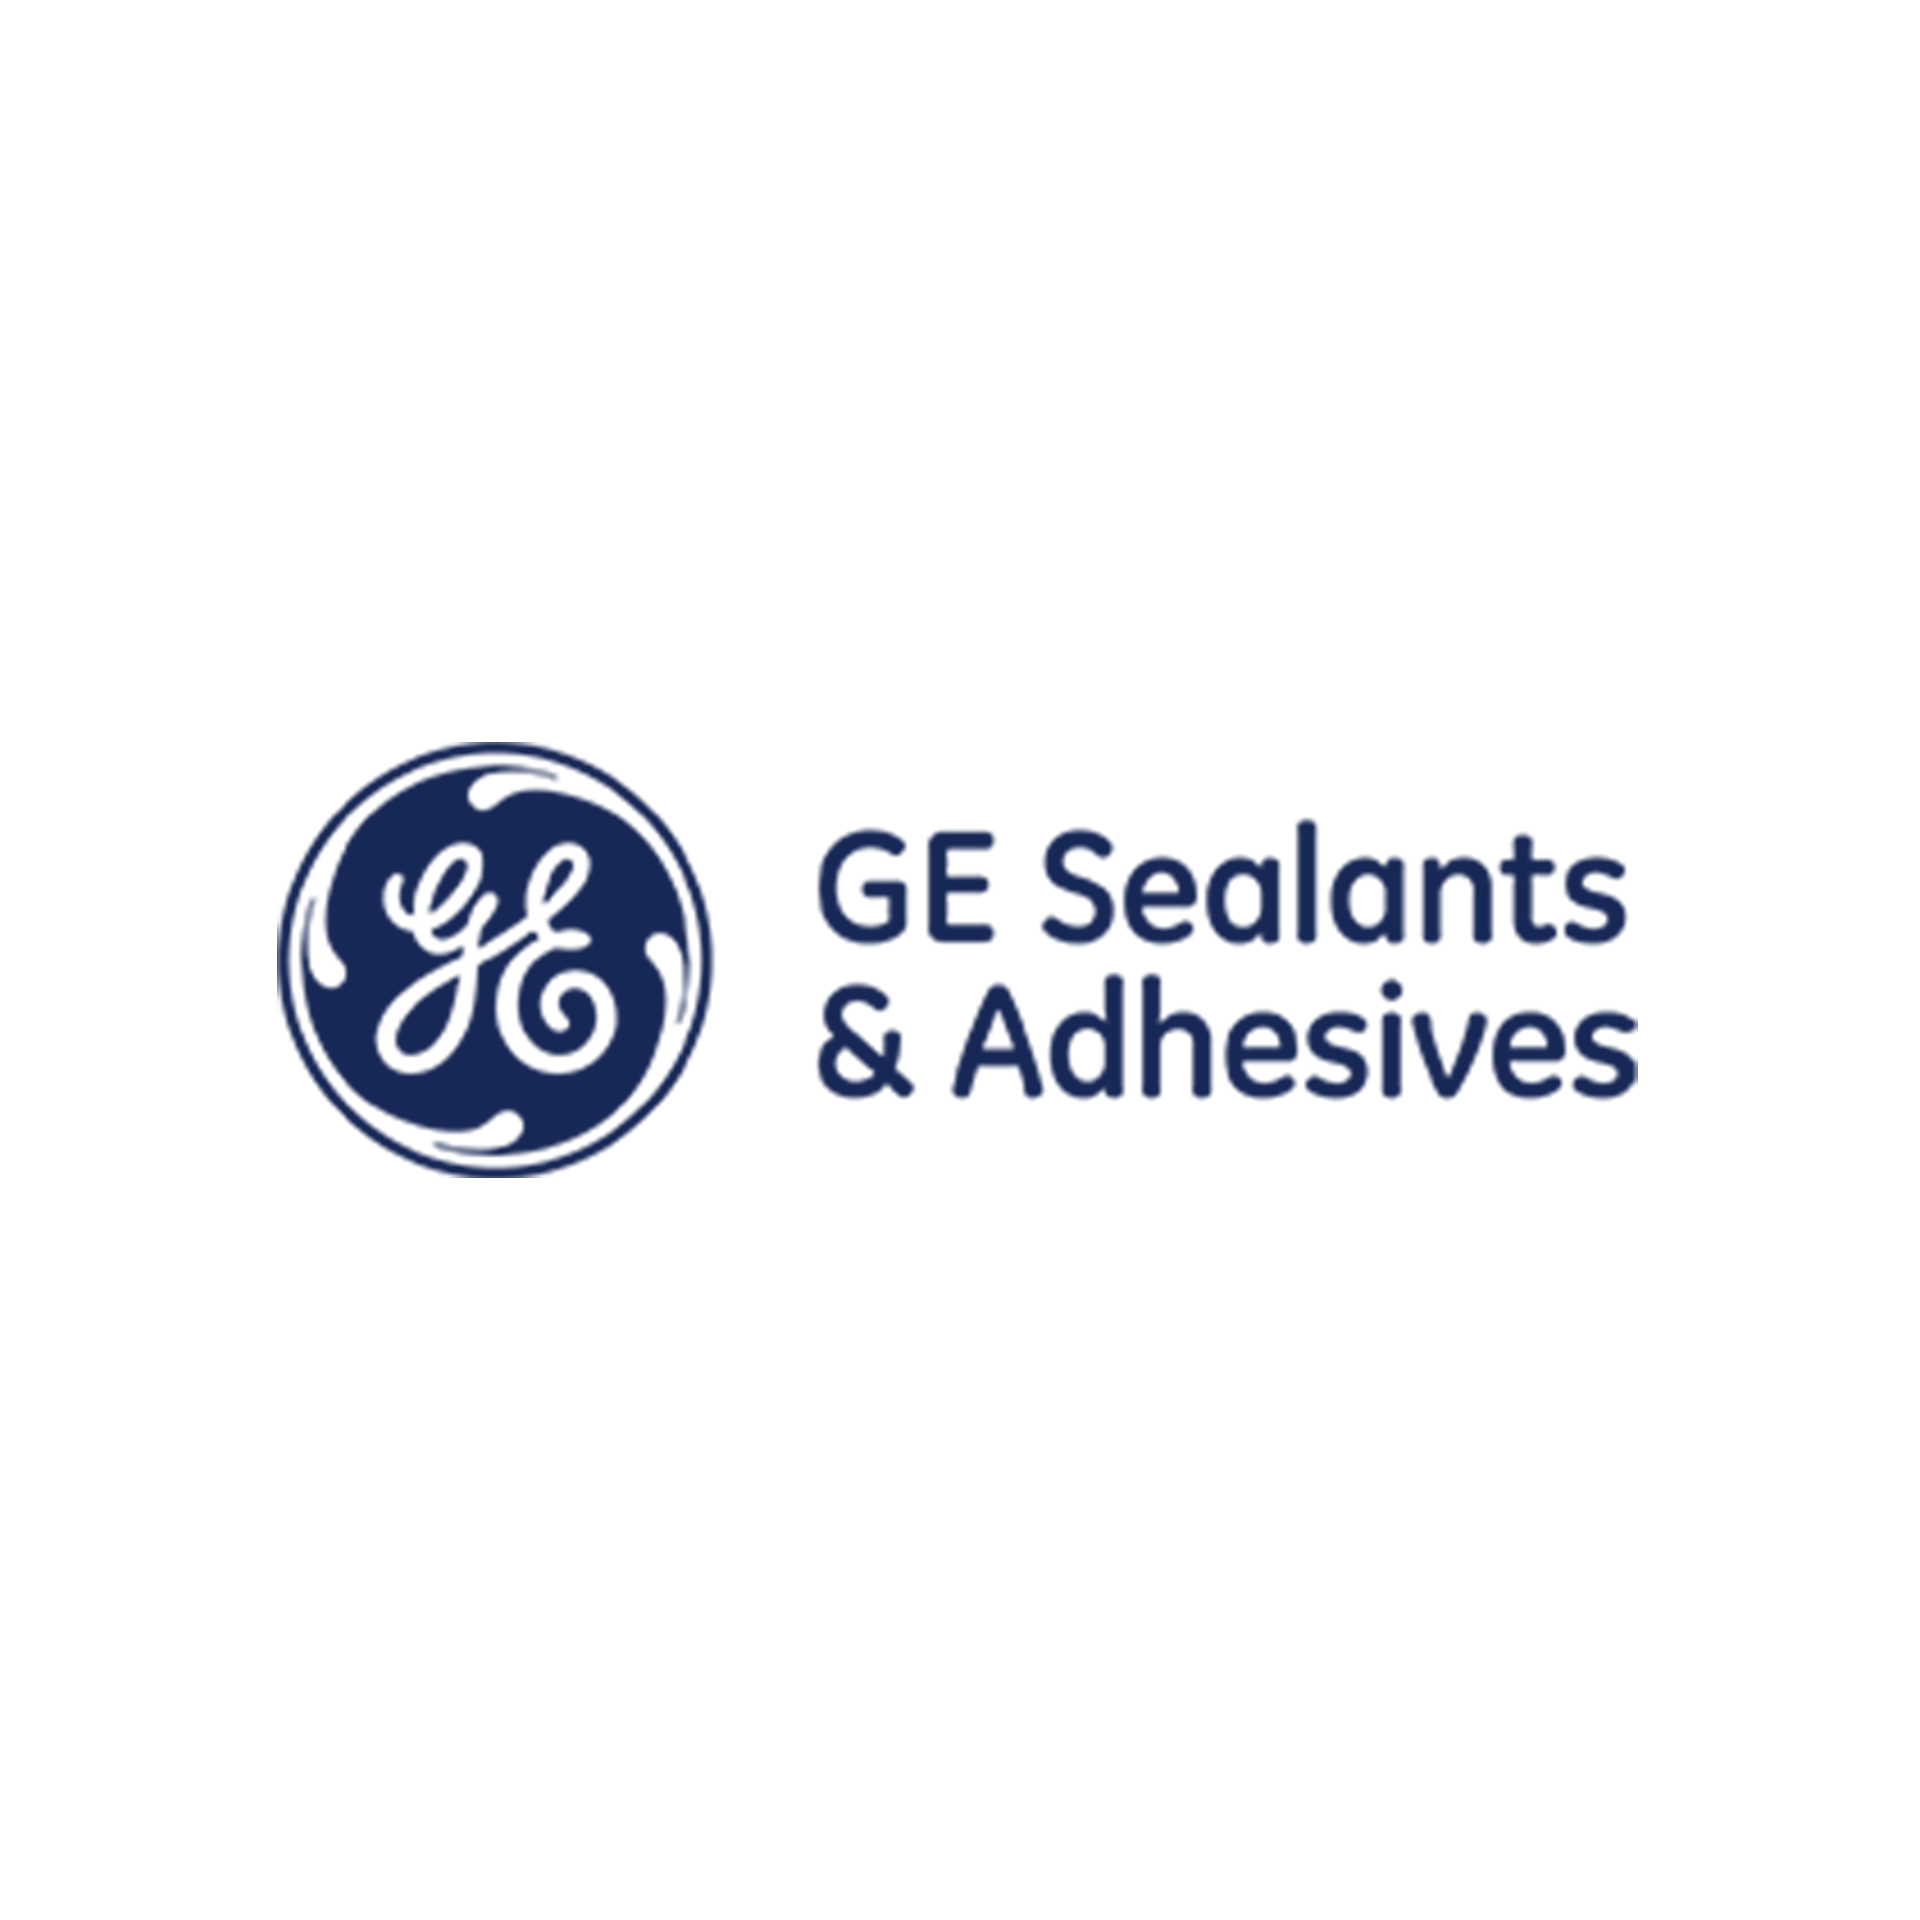 G.E. Sealants & Adhesives